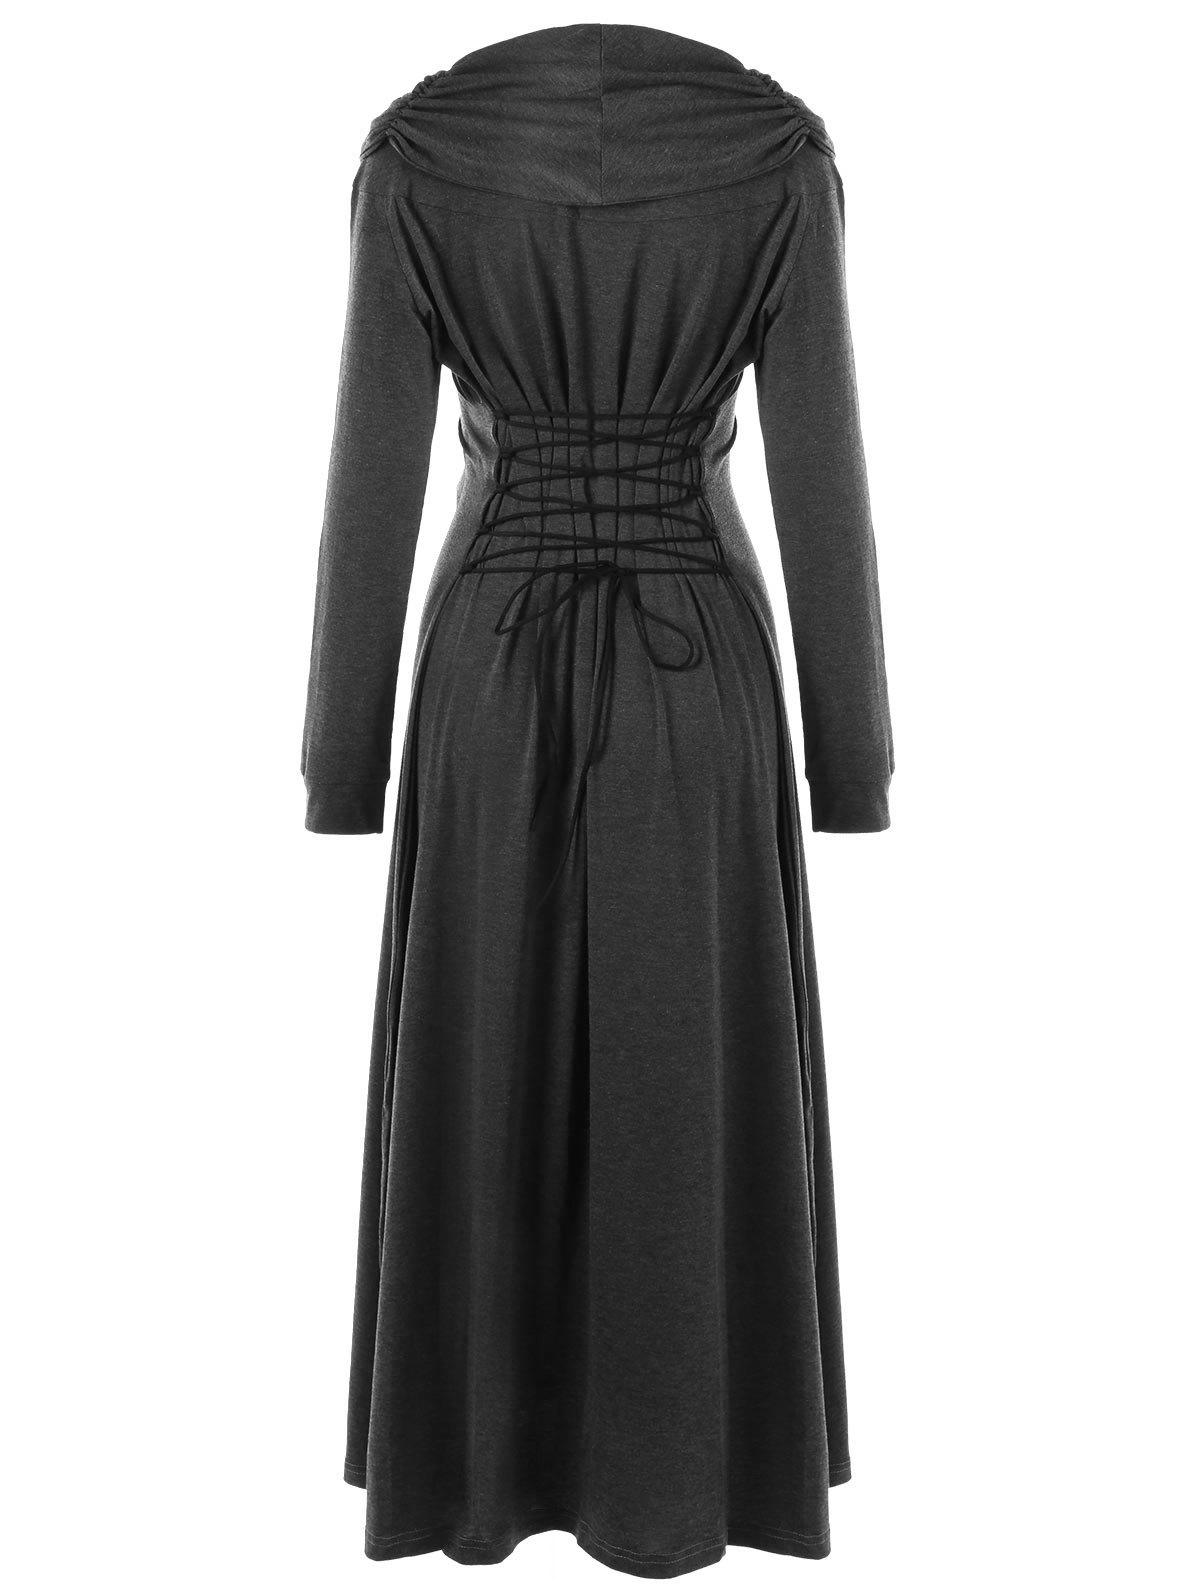 Lace Insert Lace Up Maxi Dress - DEEP GRAY L